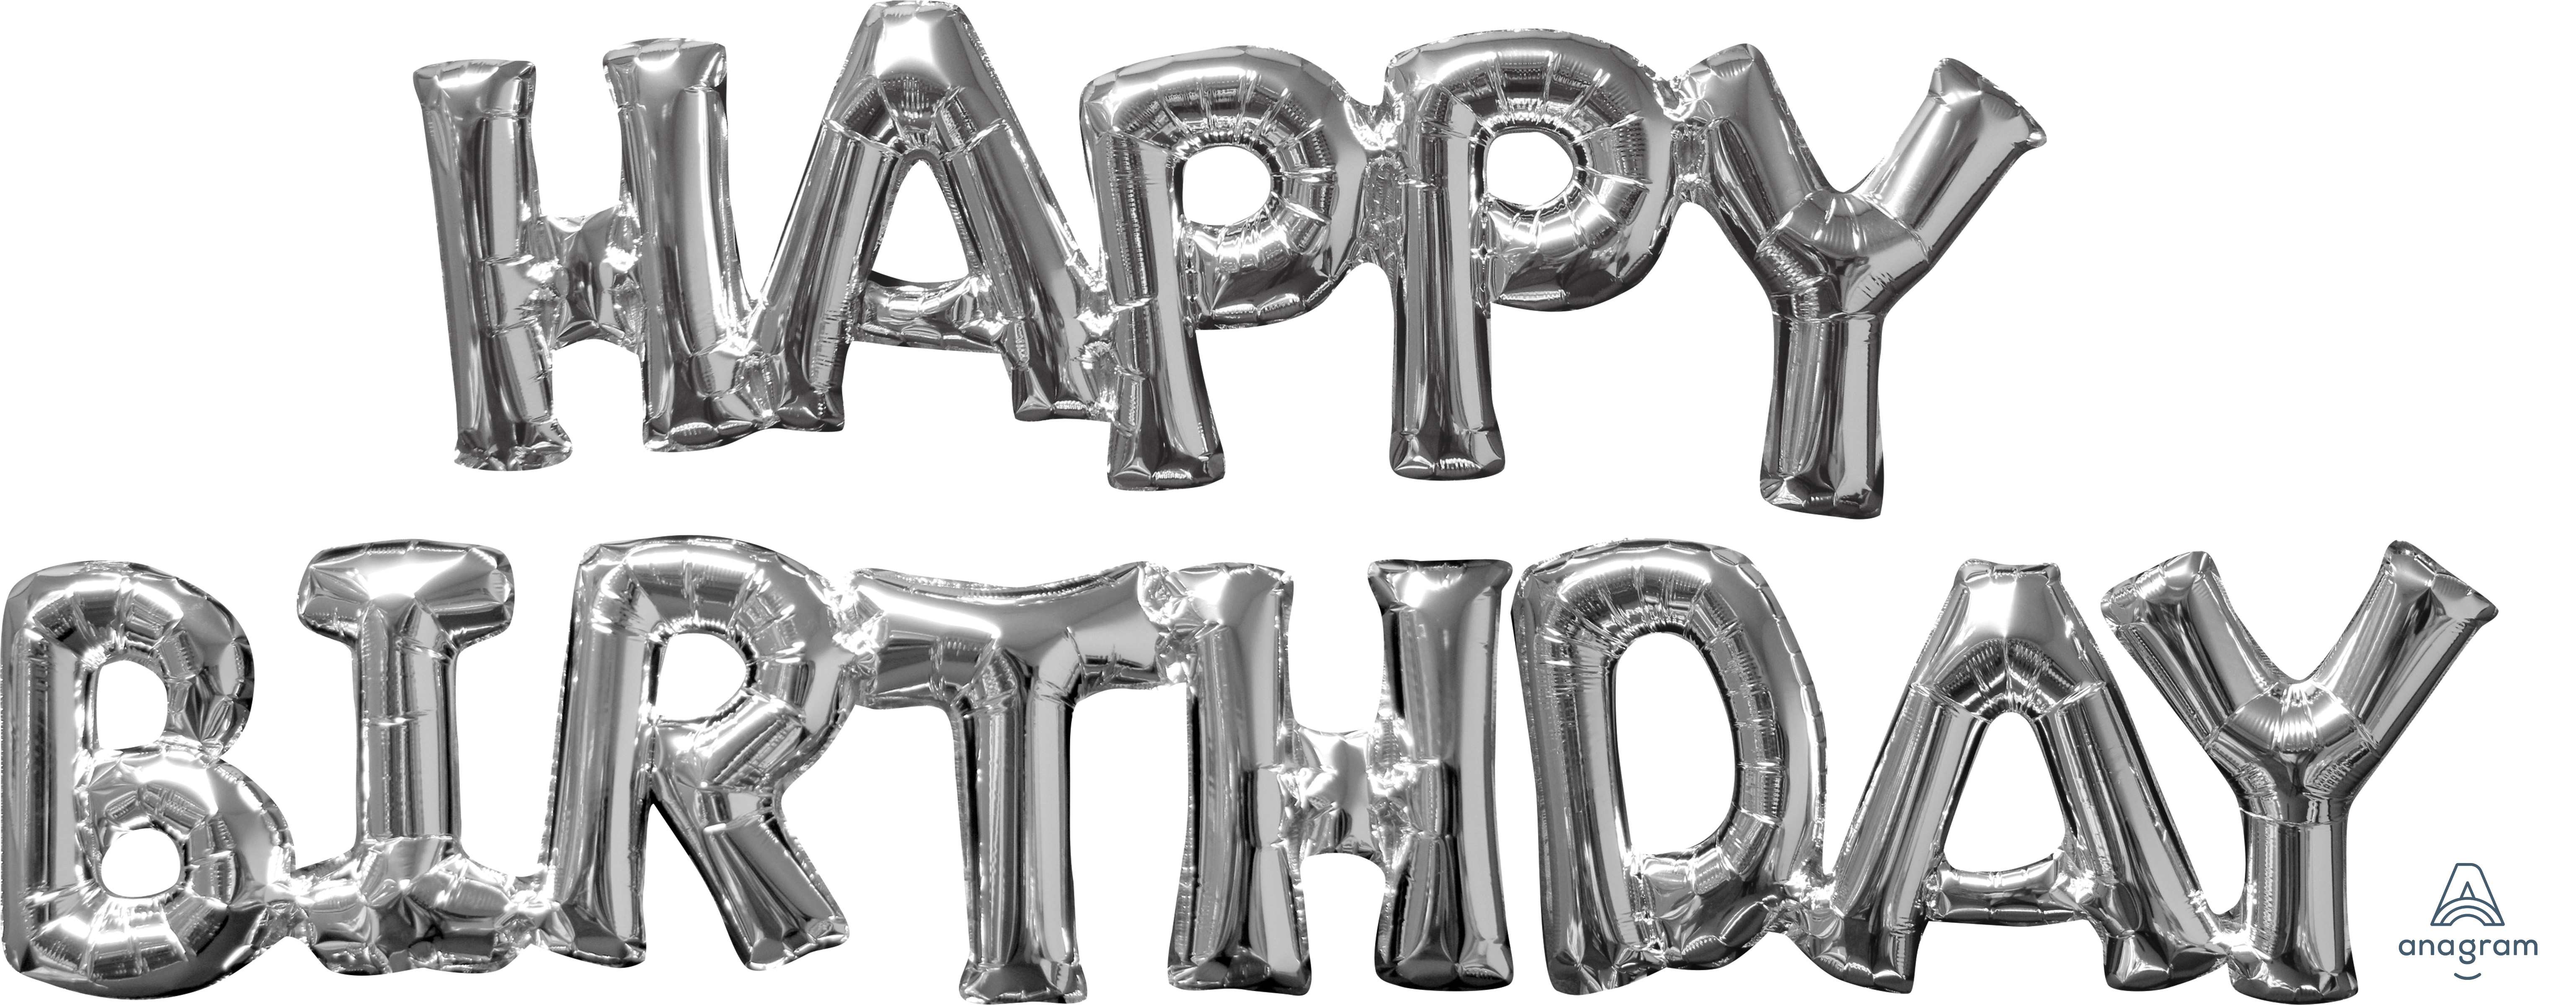 "Airfill Phrase ""HAPPY BIRTHDAY"" Silver Balloon"